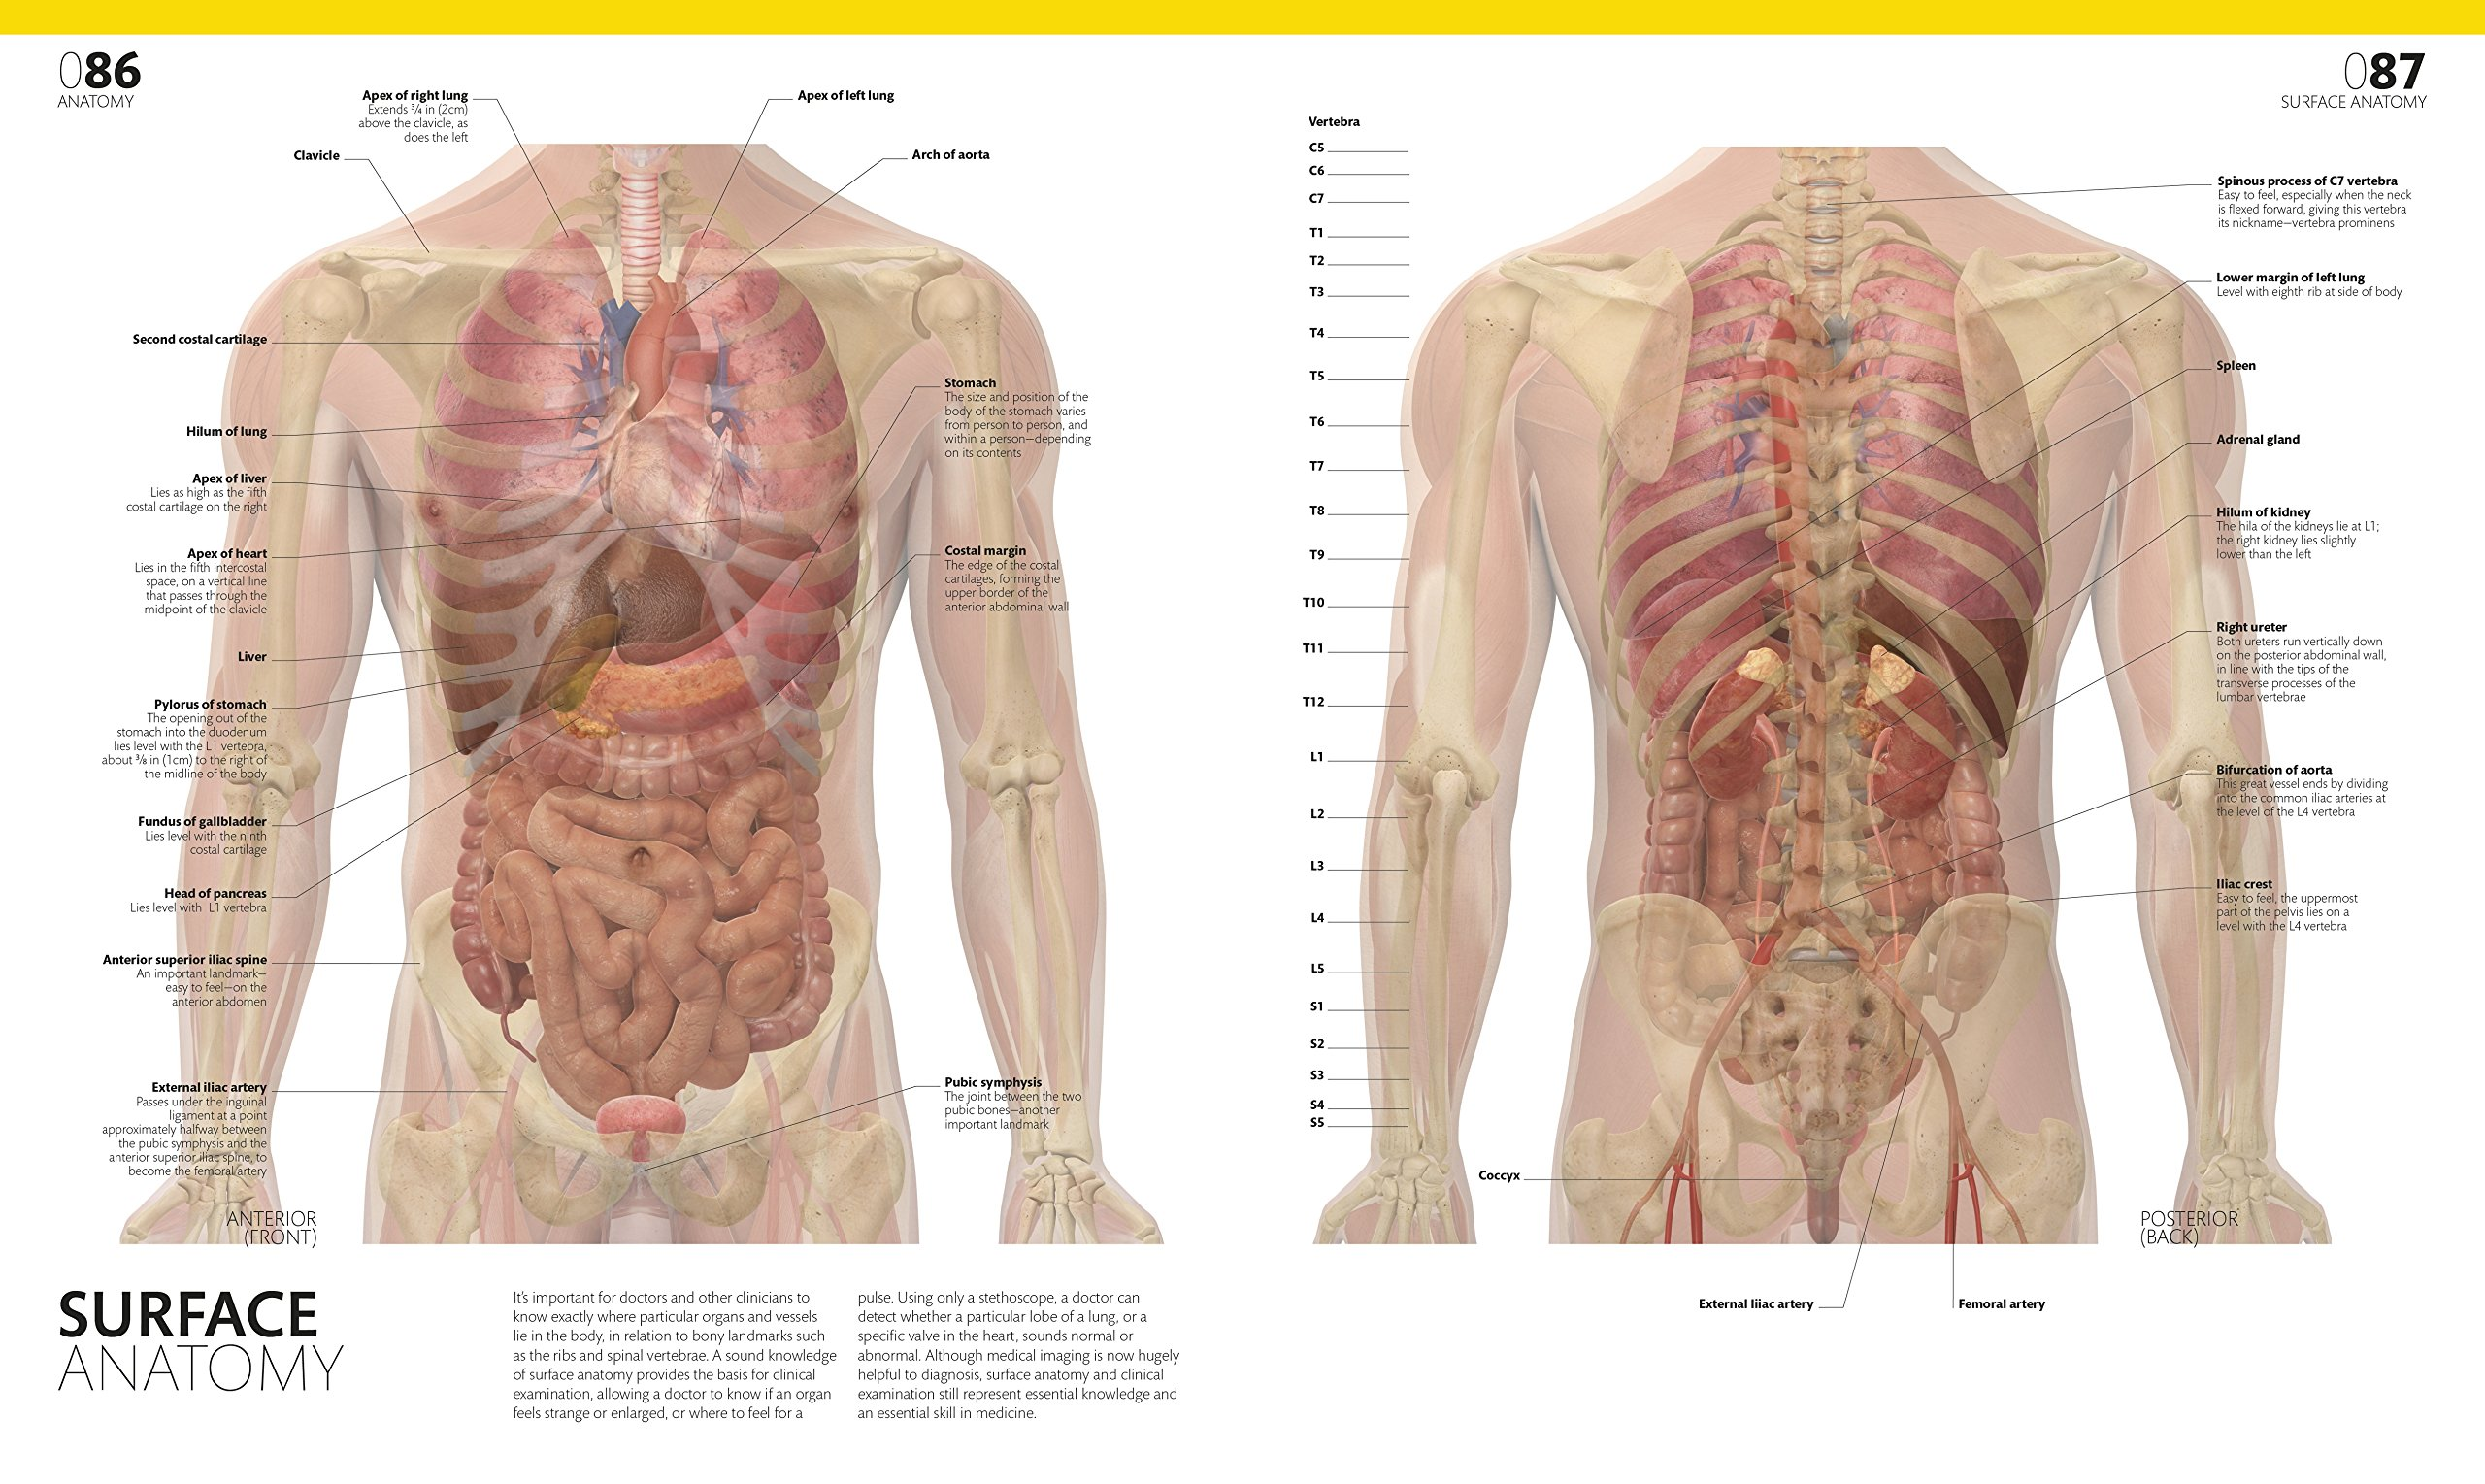 The Complete Human Body: The Definitive Visual Guide: Amazon.co.uk ...